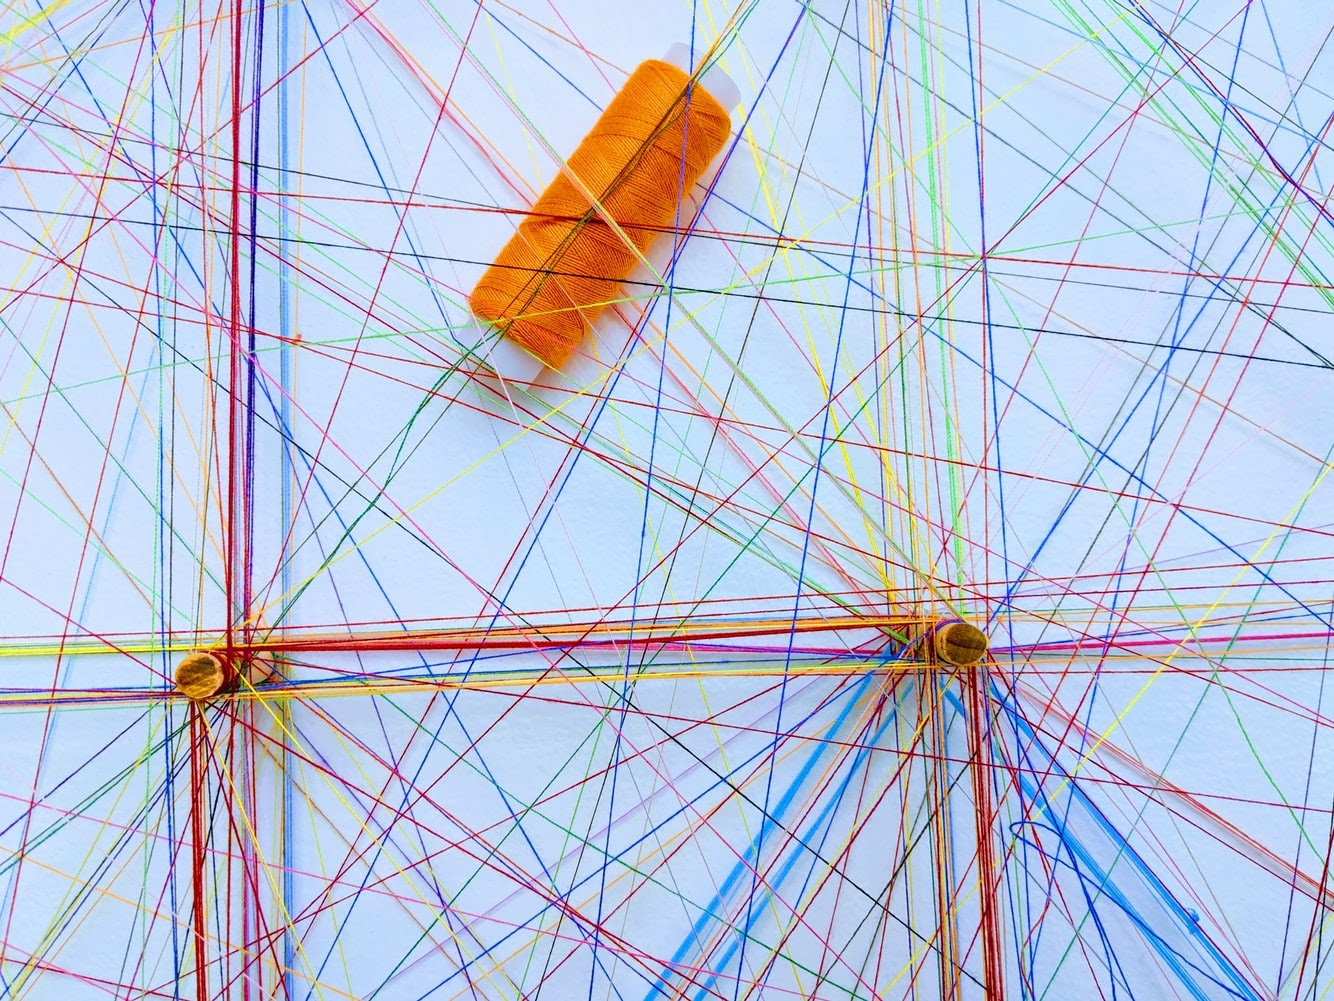 A stock image of colorful threads meeting in the middle and creating a network like effect.